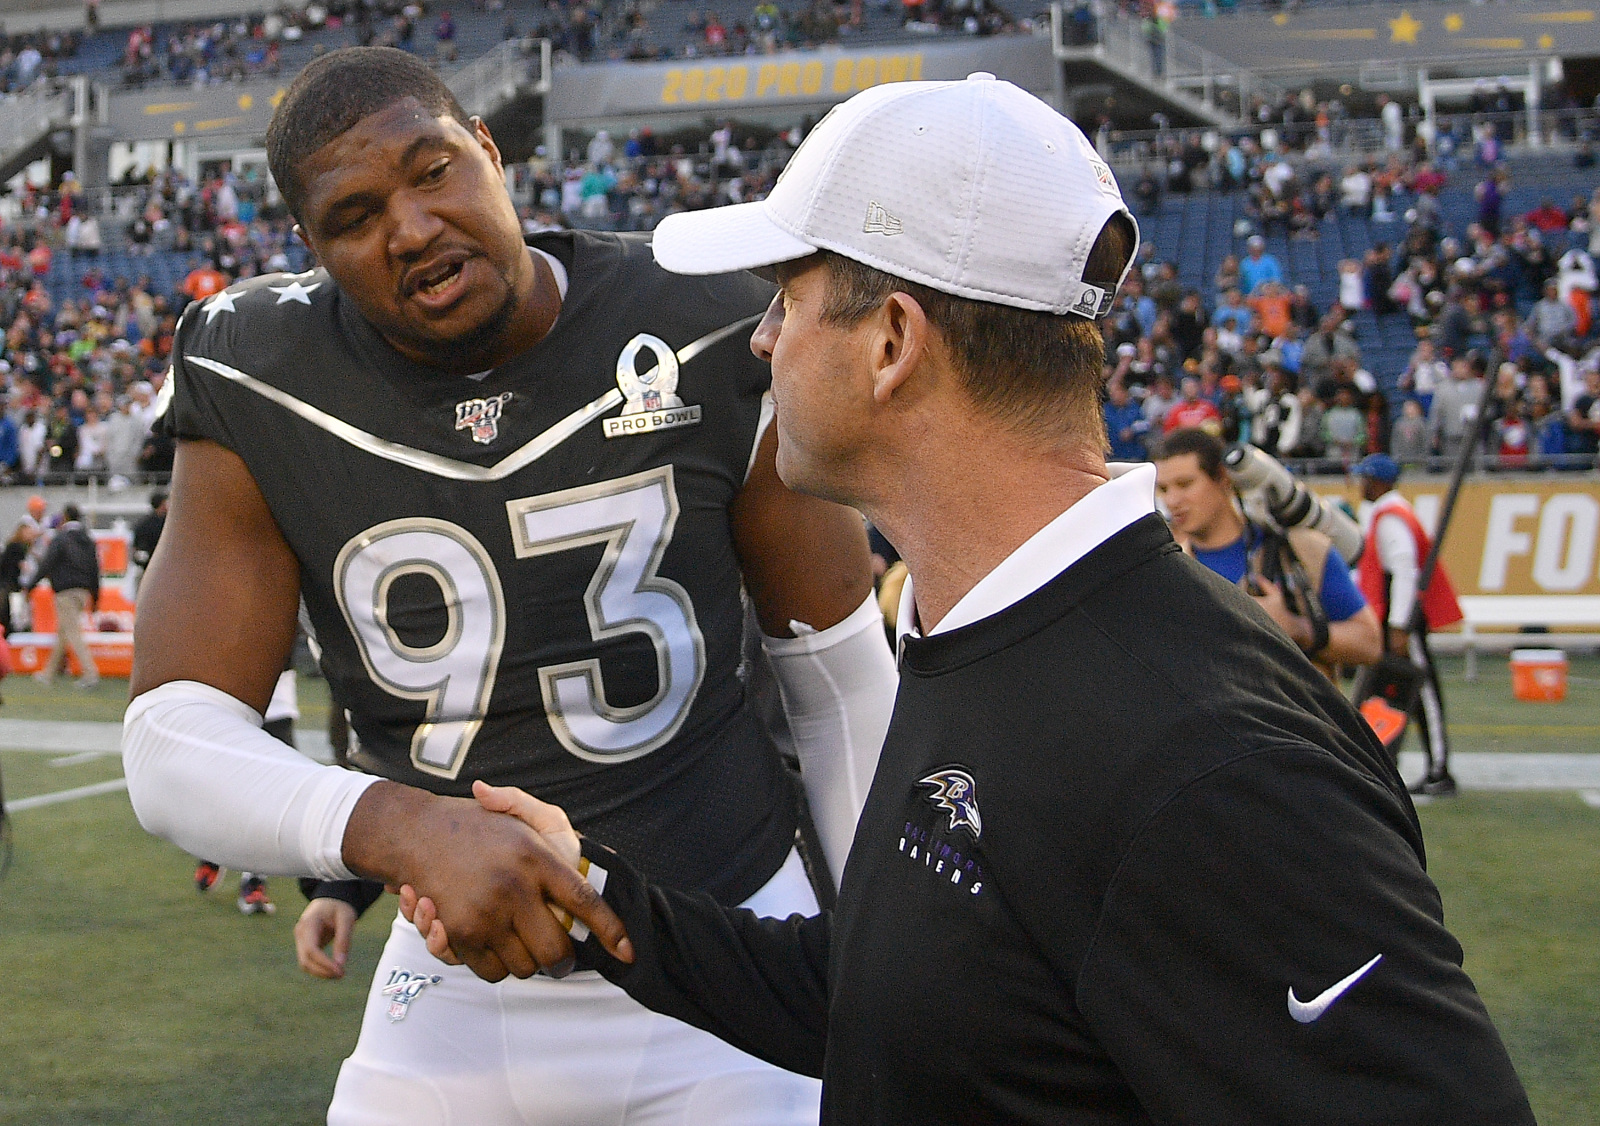 Ravens defensive linemen Calais Campbell shaking hands with John Harbaugh at Pro Bowl.